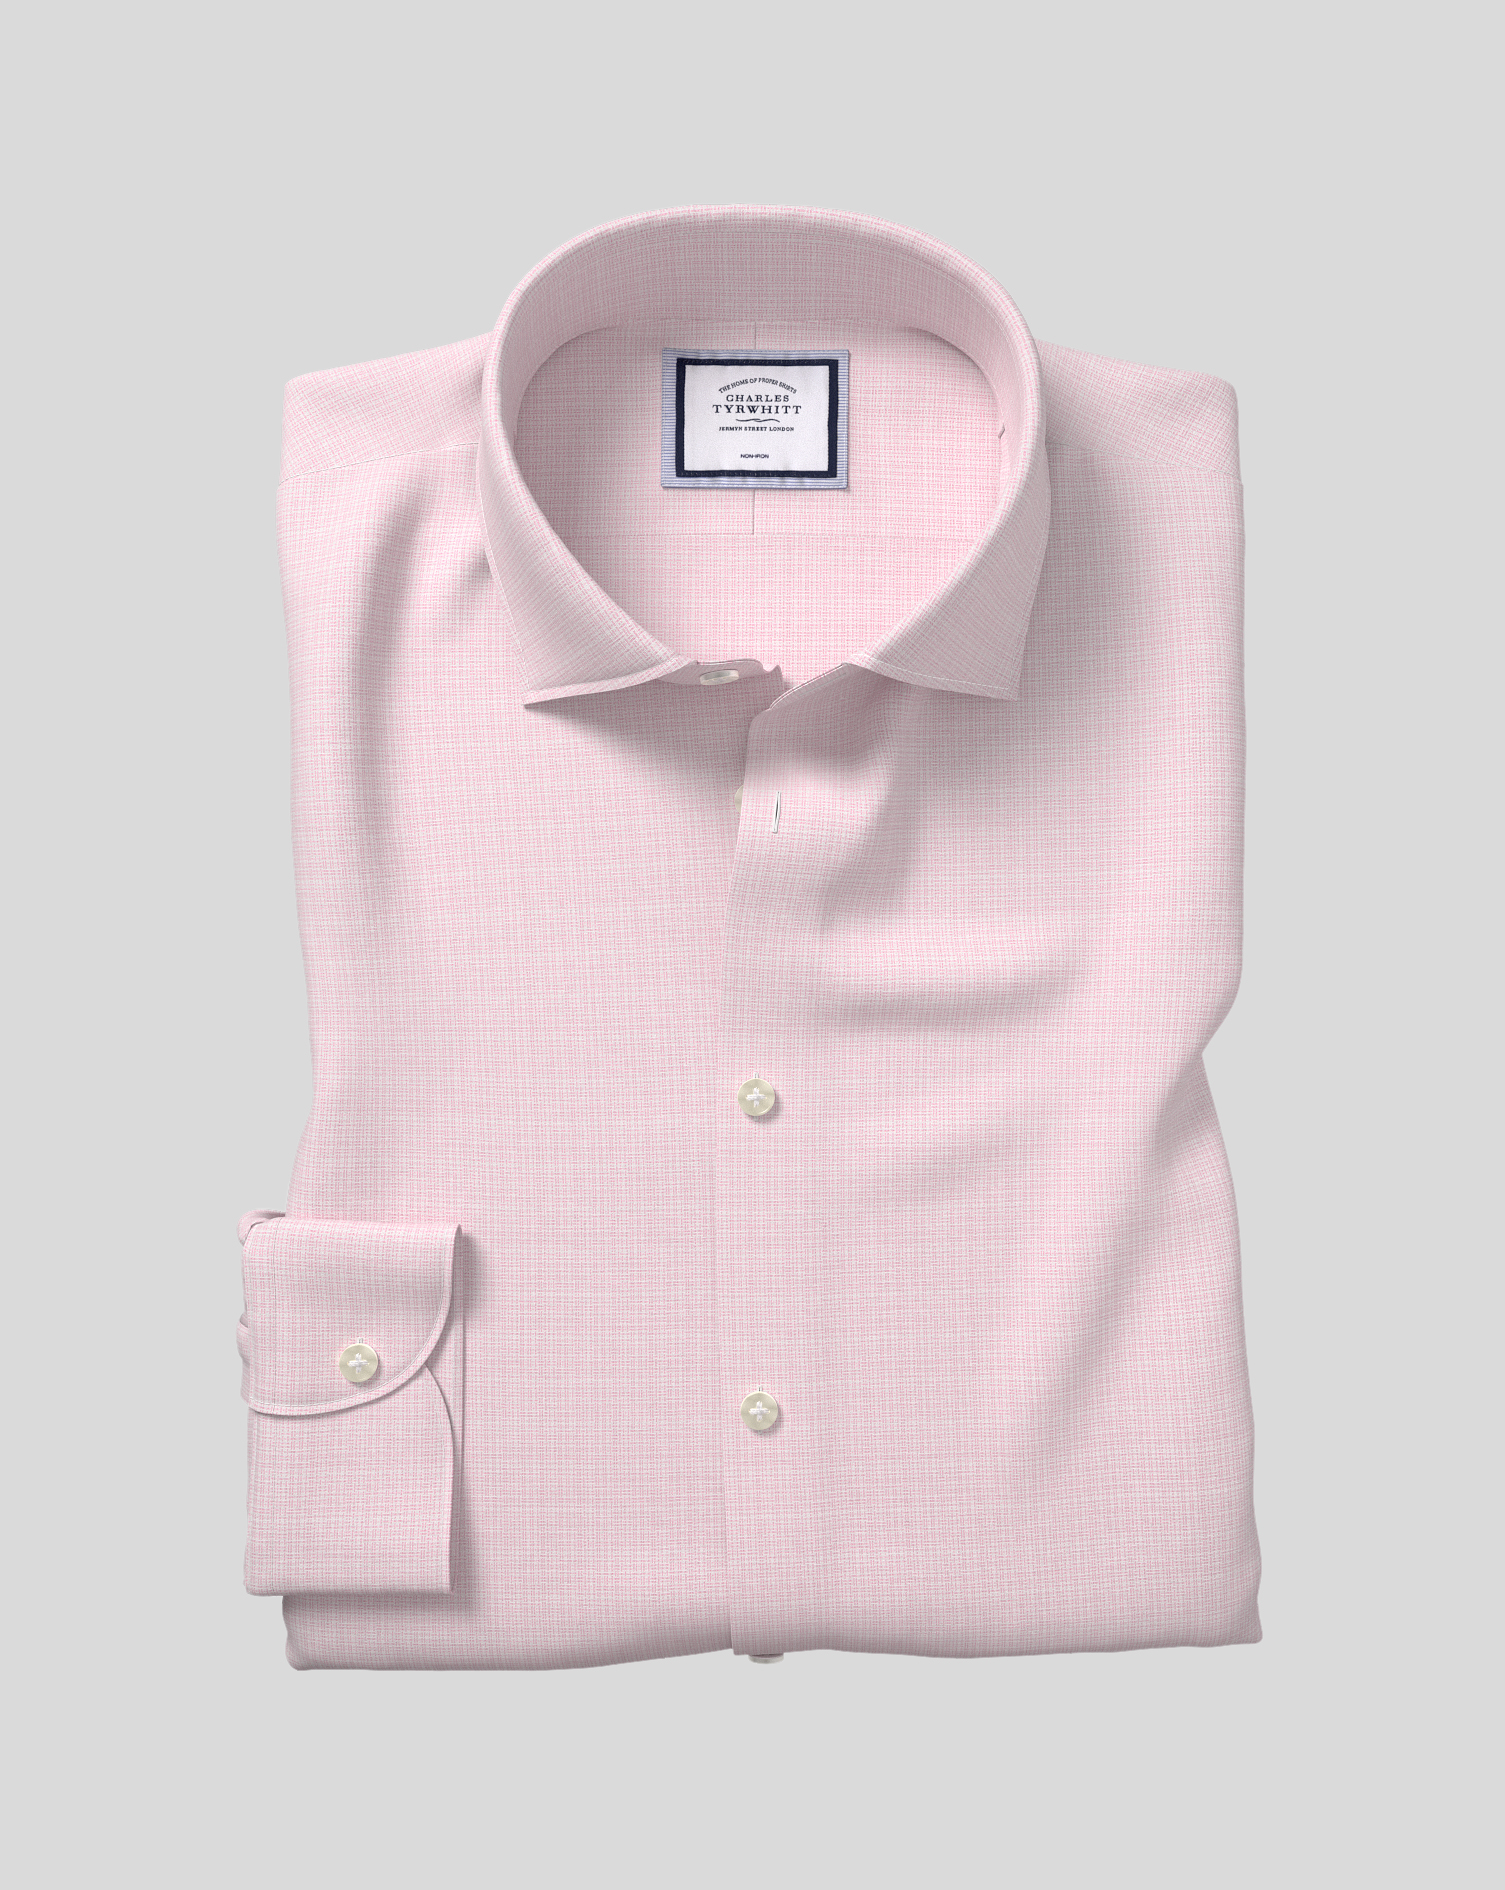 Cotton Business Casual Collar Non-Iron Natural Stretch Sketch Shirt - Pink